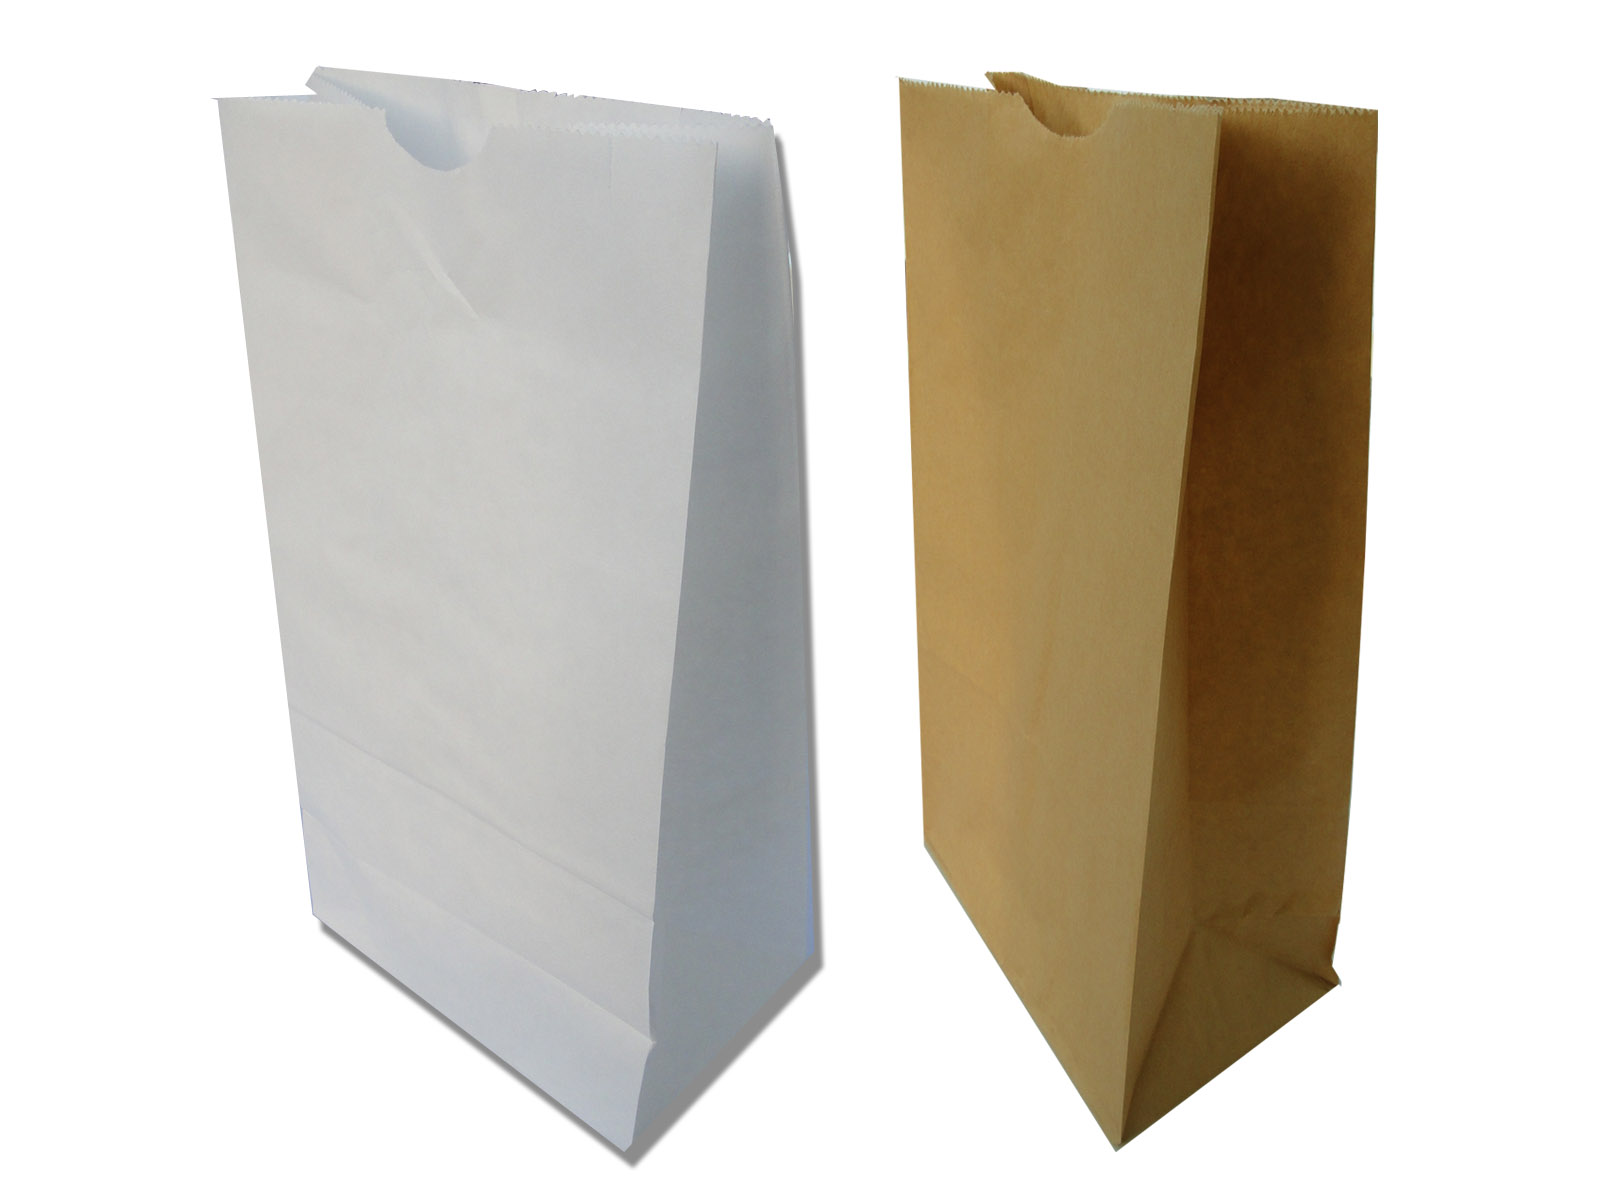 plasticcontainer com my paper bag paper bag base or brown paper bag wedding paper bag